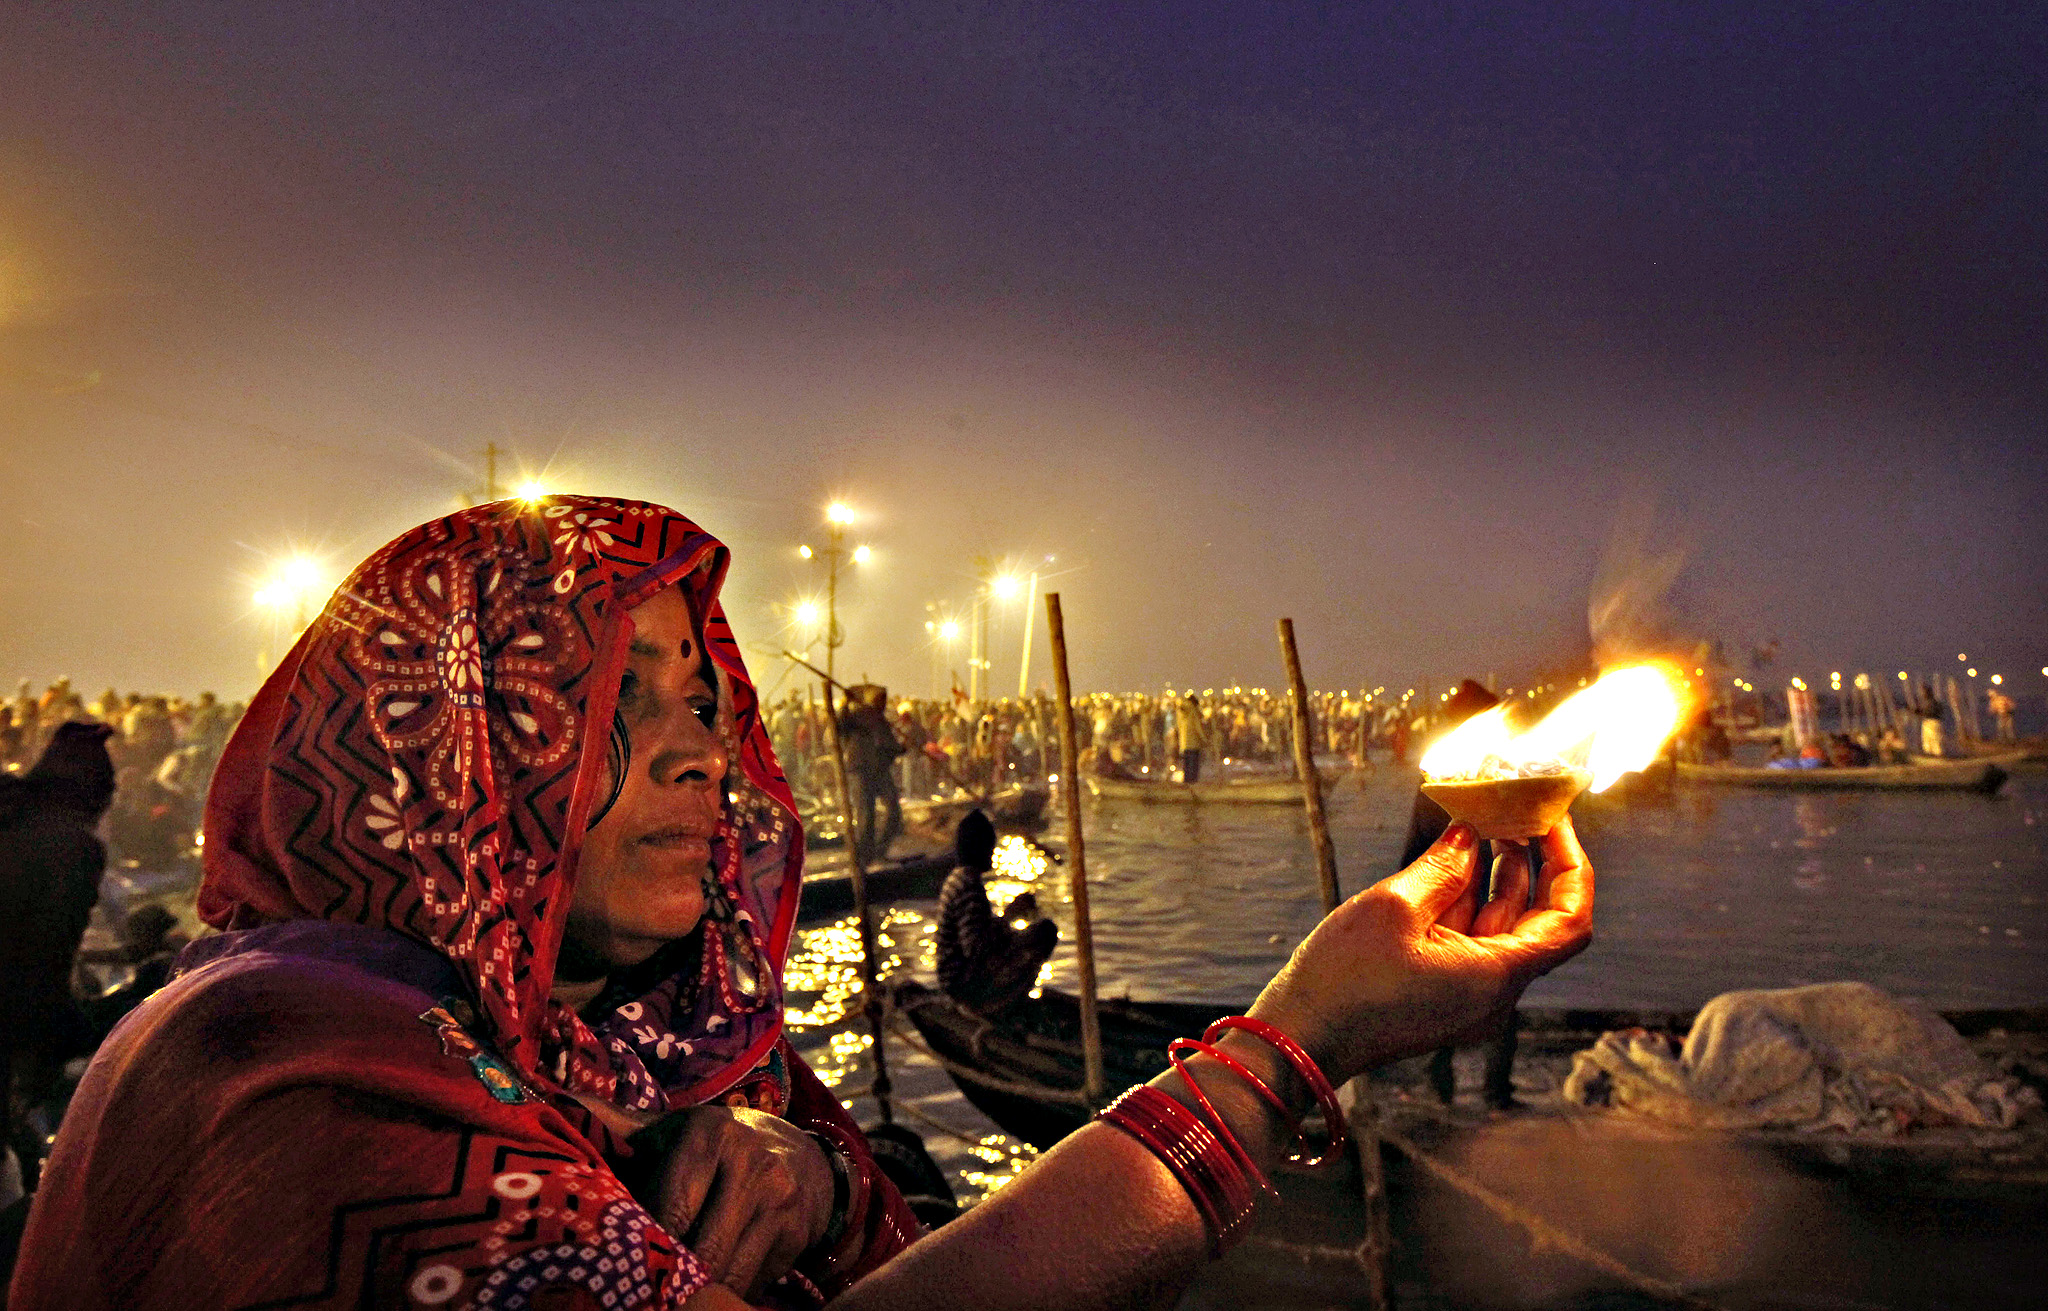 "A Hindu woman devotee holds an oil lamp and offers prayers to the Sun god after taking a holy dip at the Sangam, the confluence of the Ganges and Yamuna rivers, on ""Mauni Amavasya"" or new moon day, the third and most auspicious date of bathing during the annual month long Hindu religious fair ""Magh Mela"" in Allahabad, India,Tuesday, Jan. 20, 2015. Hundreds of thousands of Hindu pilgrims take dips in the confluence, hoping to wash away sins during the month long festival."